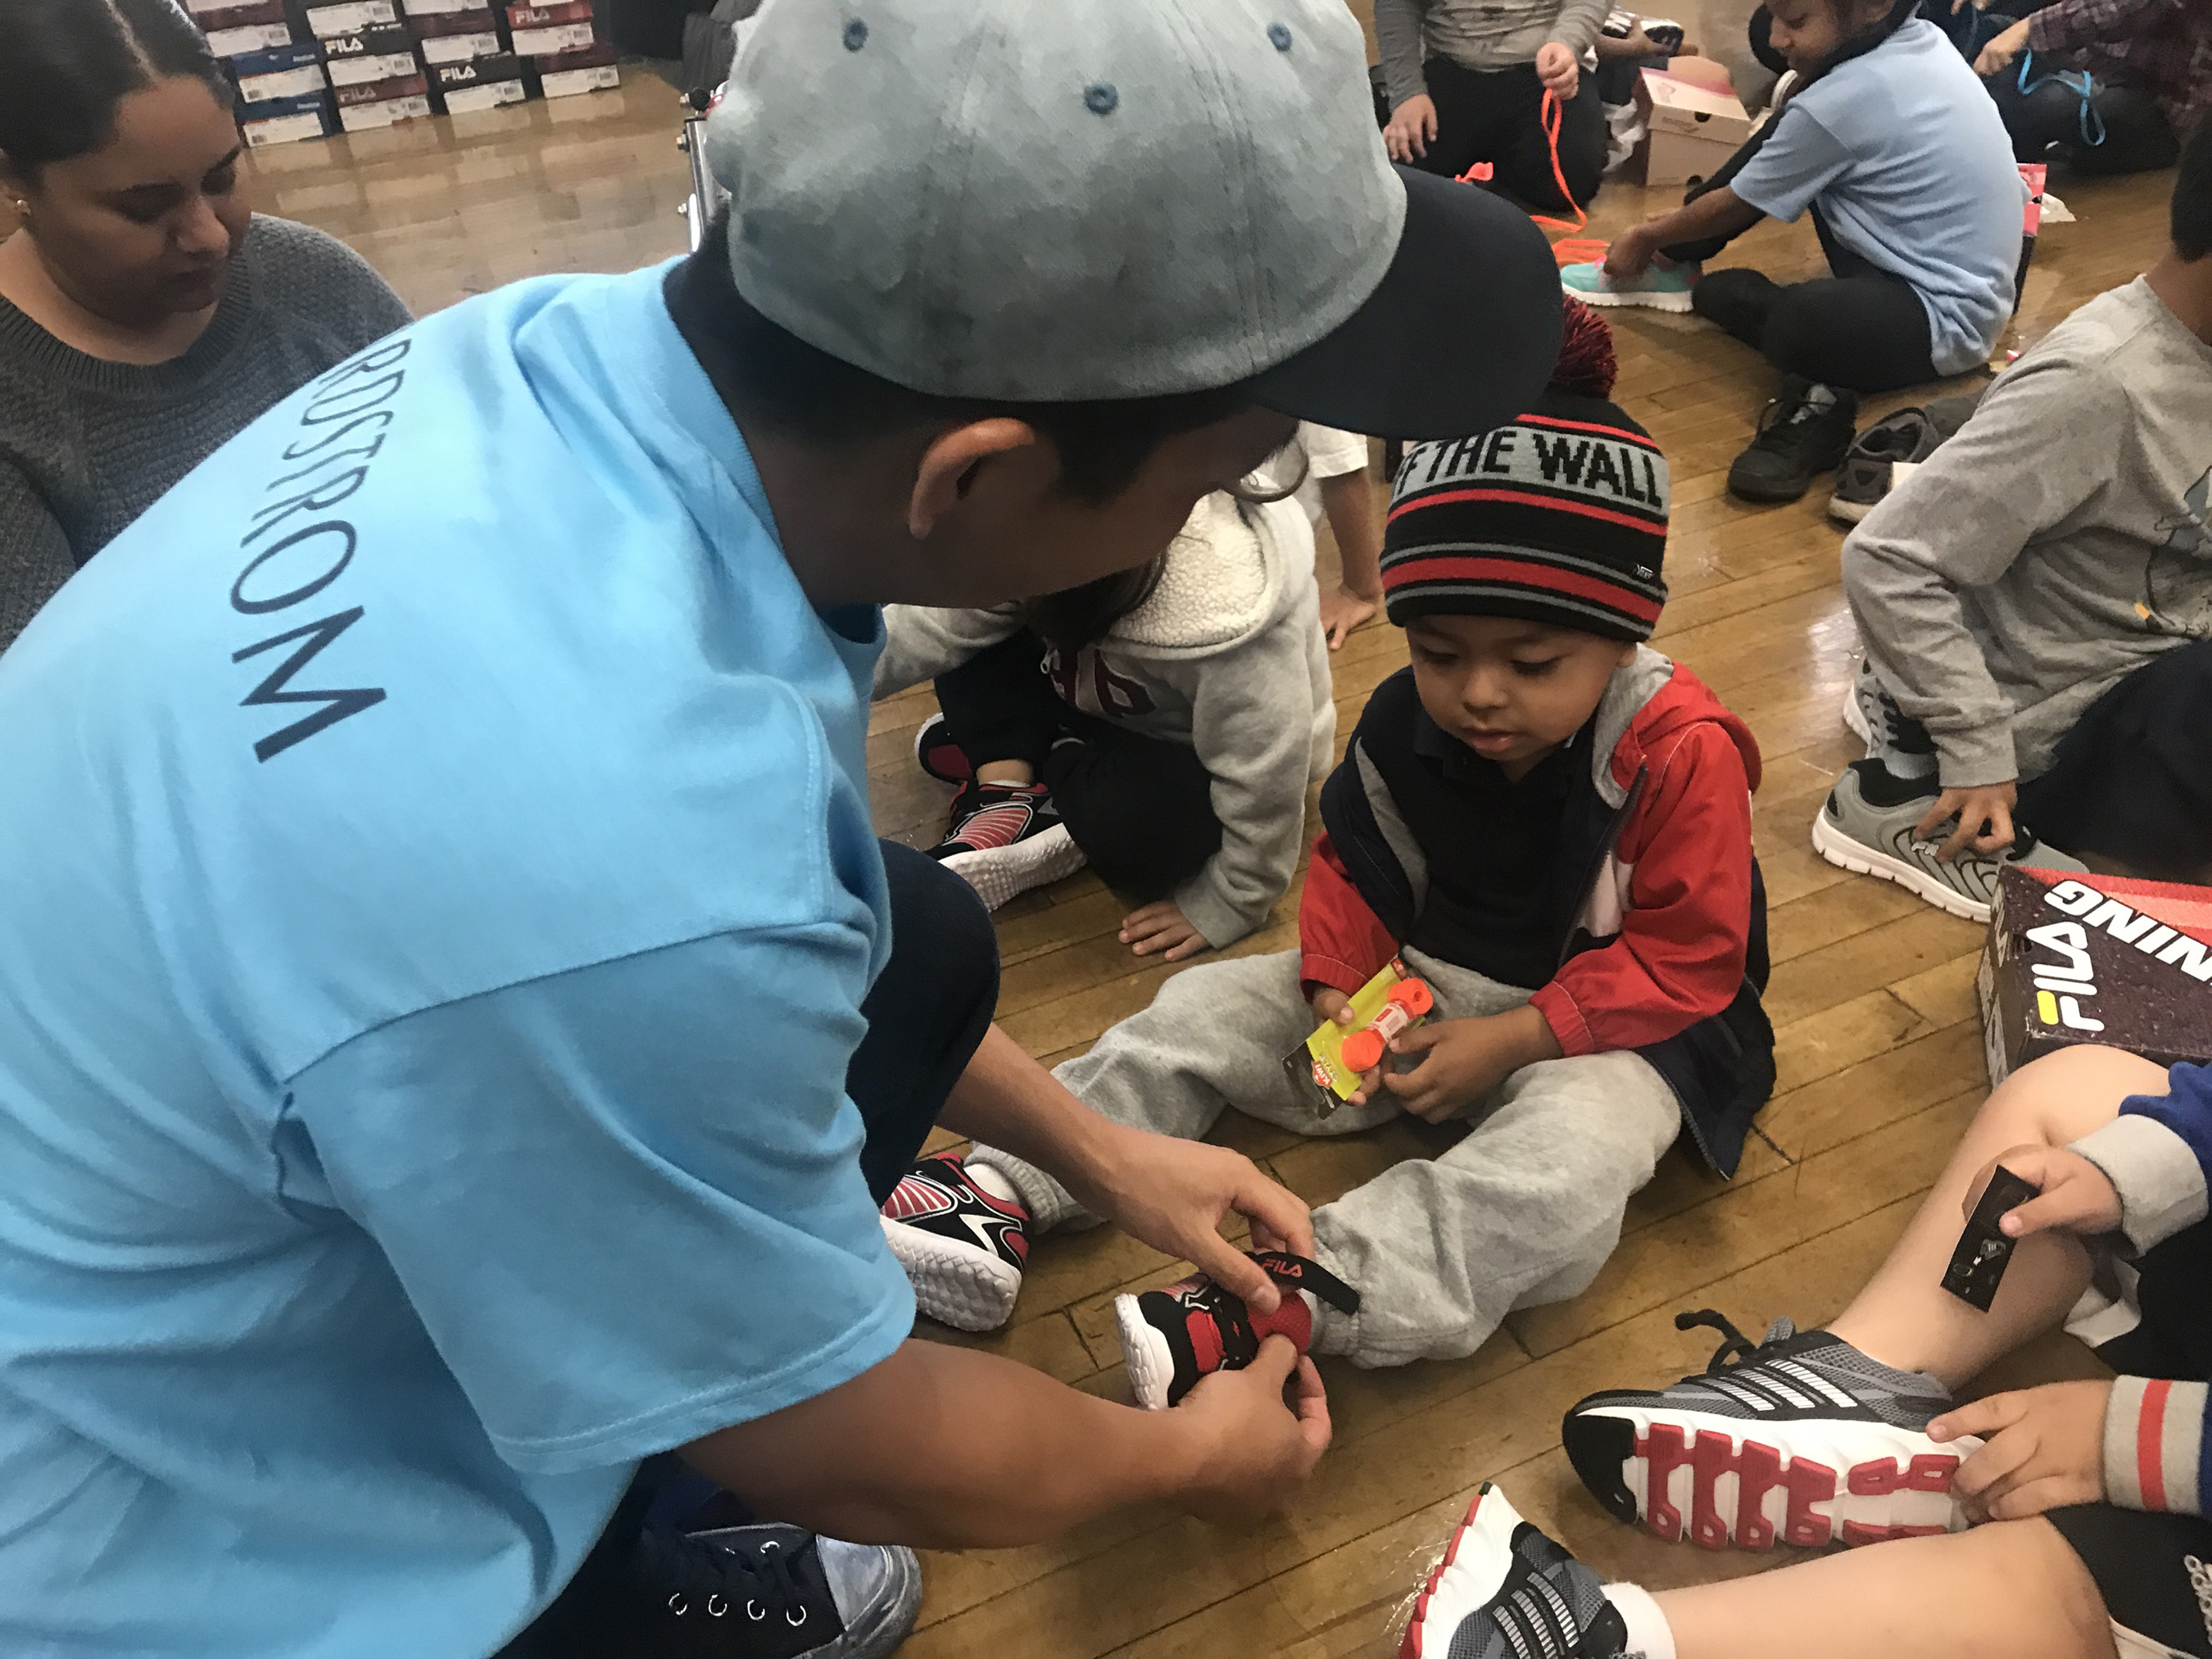 Nordstrom employee helps student try on their new shoes and makes sure they fit at shoe delivery event in 2019.